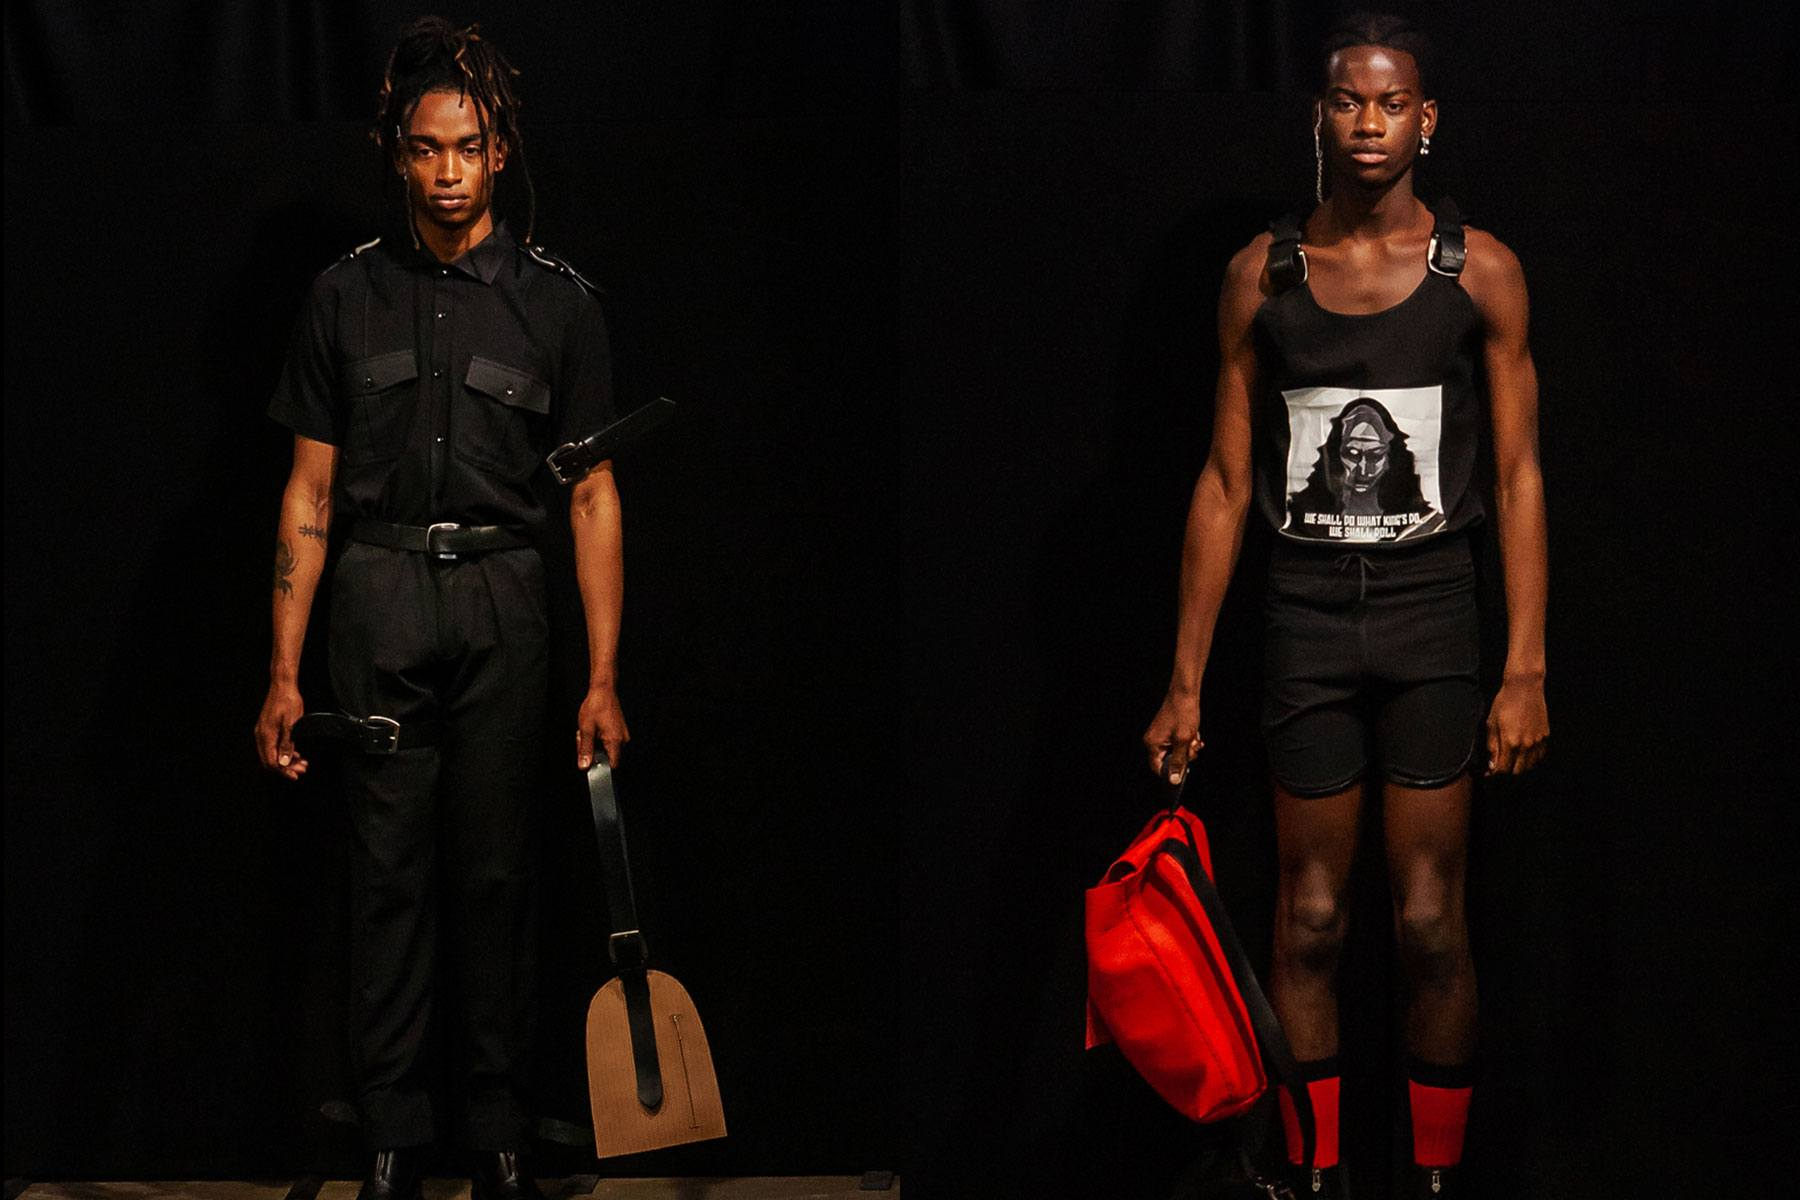 Male models snapped on the runway for Tokyo James menswear collection shown during London Fashion Week Men for Spring/Summer 2020. Ponyboy magazine.